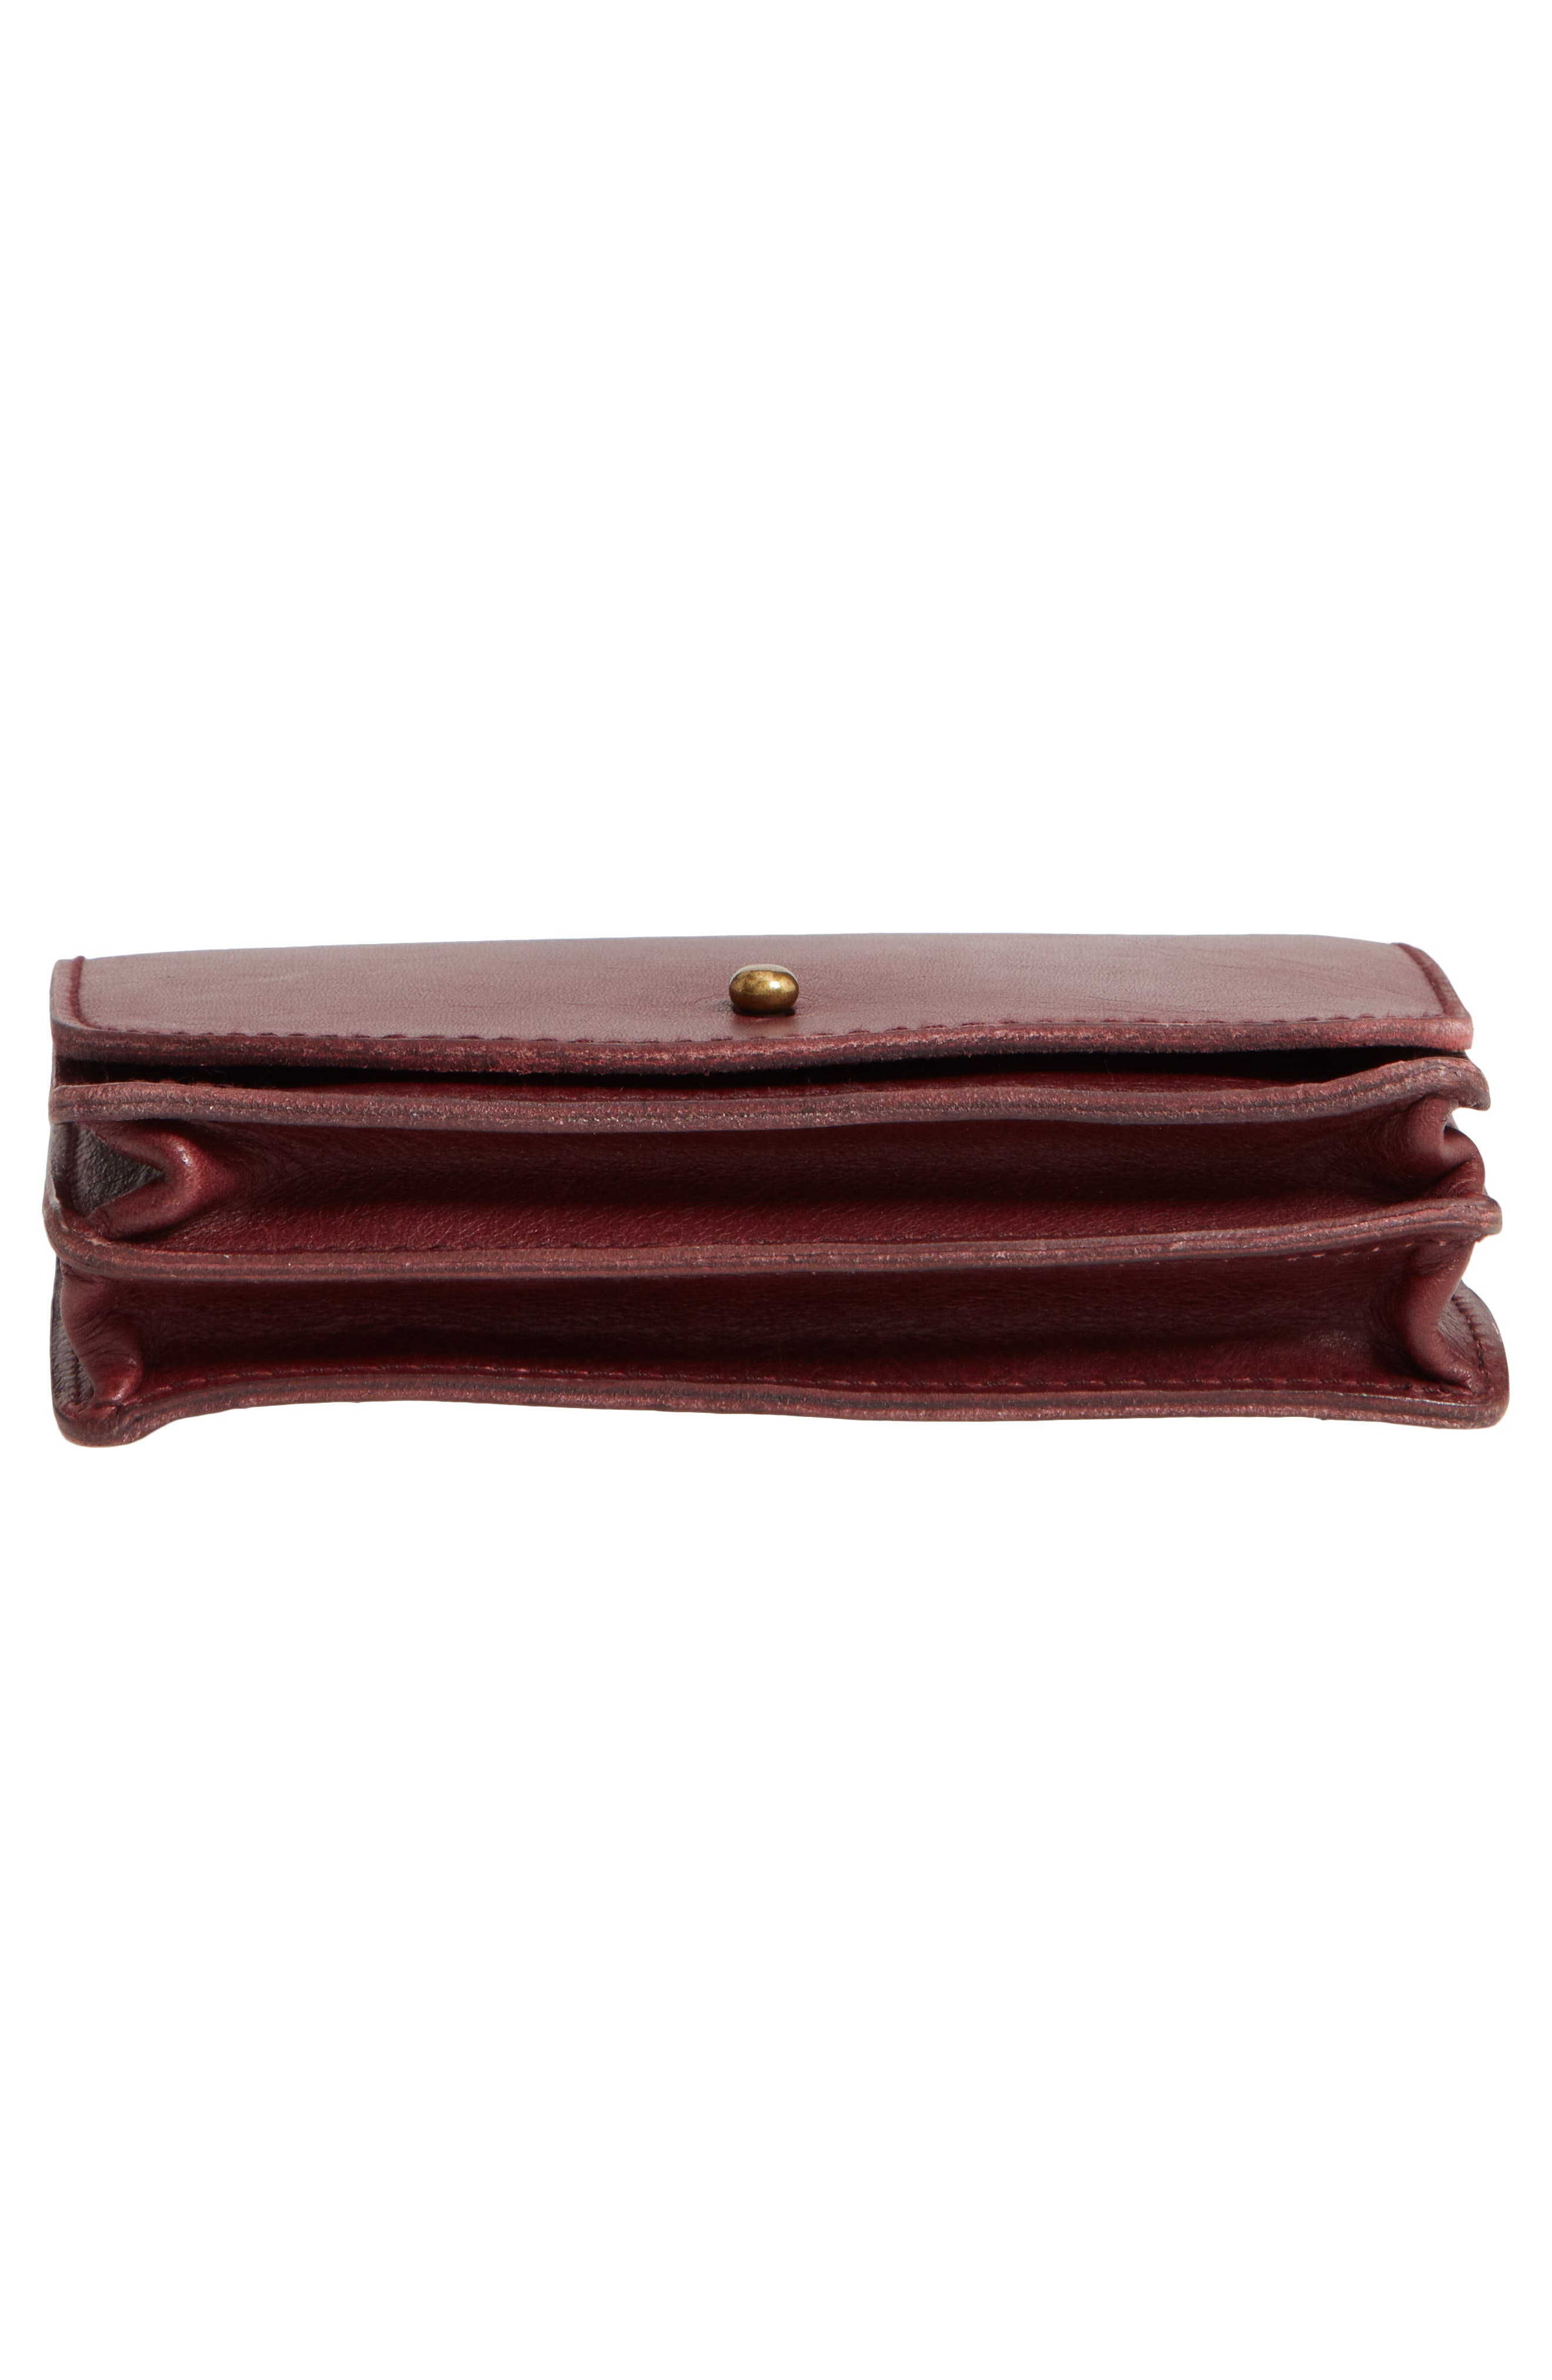 MADEWELL,                             Leather Crossbody Wallet,                             Alternate thumbnail 6, color,                             DARK CABERNET